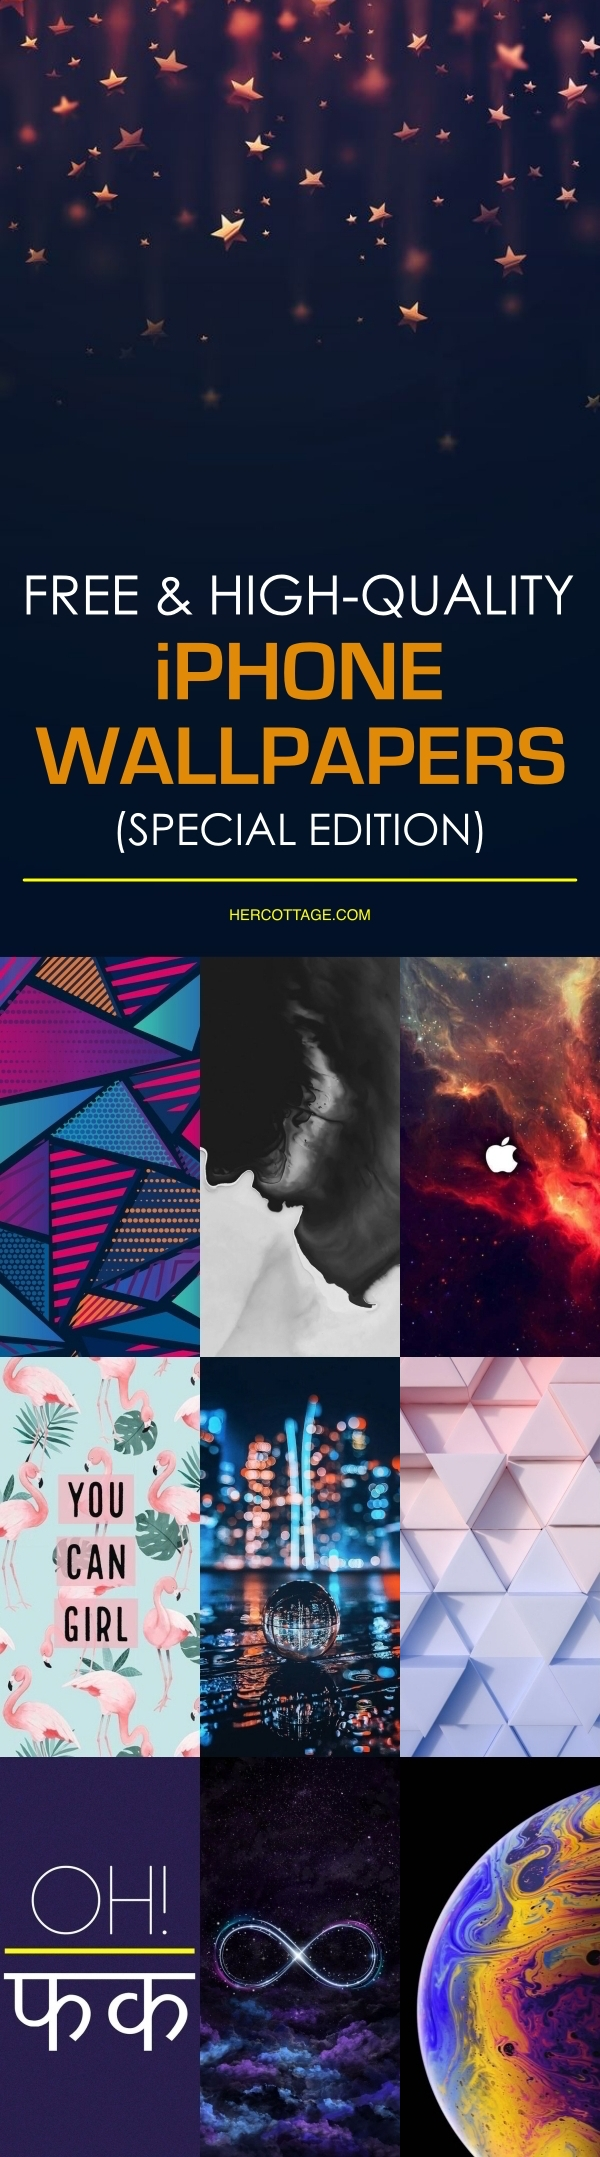 Free-and-High-Quality-iPhone-Wallpapers-Special-Edition